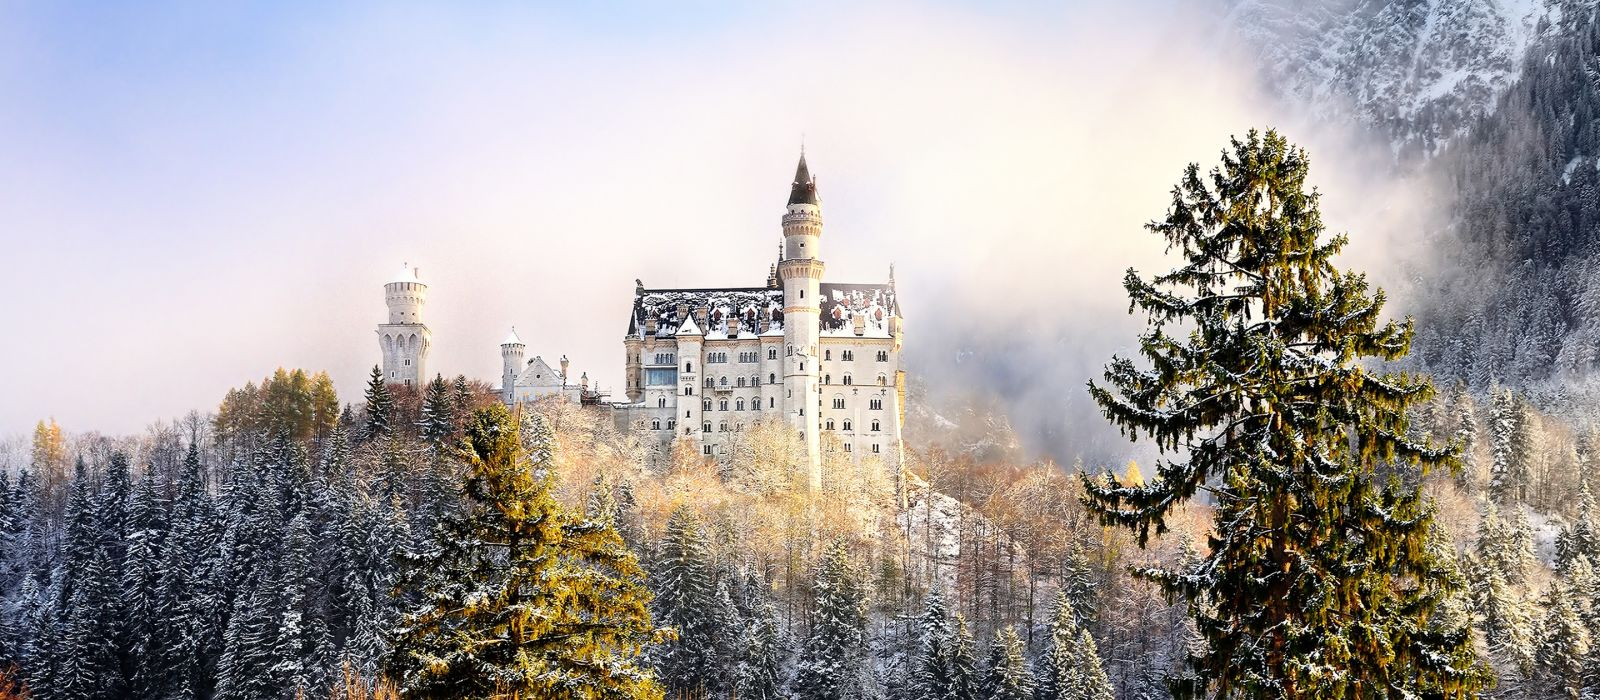 Splendid scene of royal castle Neuschwanstein and surrounding area in Bavaria, Germany (Deutschland). Famous Bavarian destination sign at sunny snowy winter day